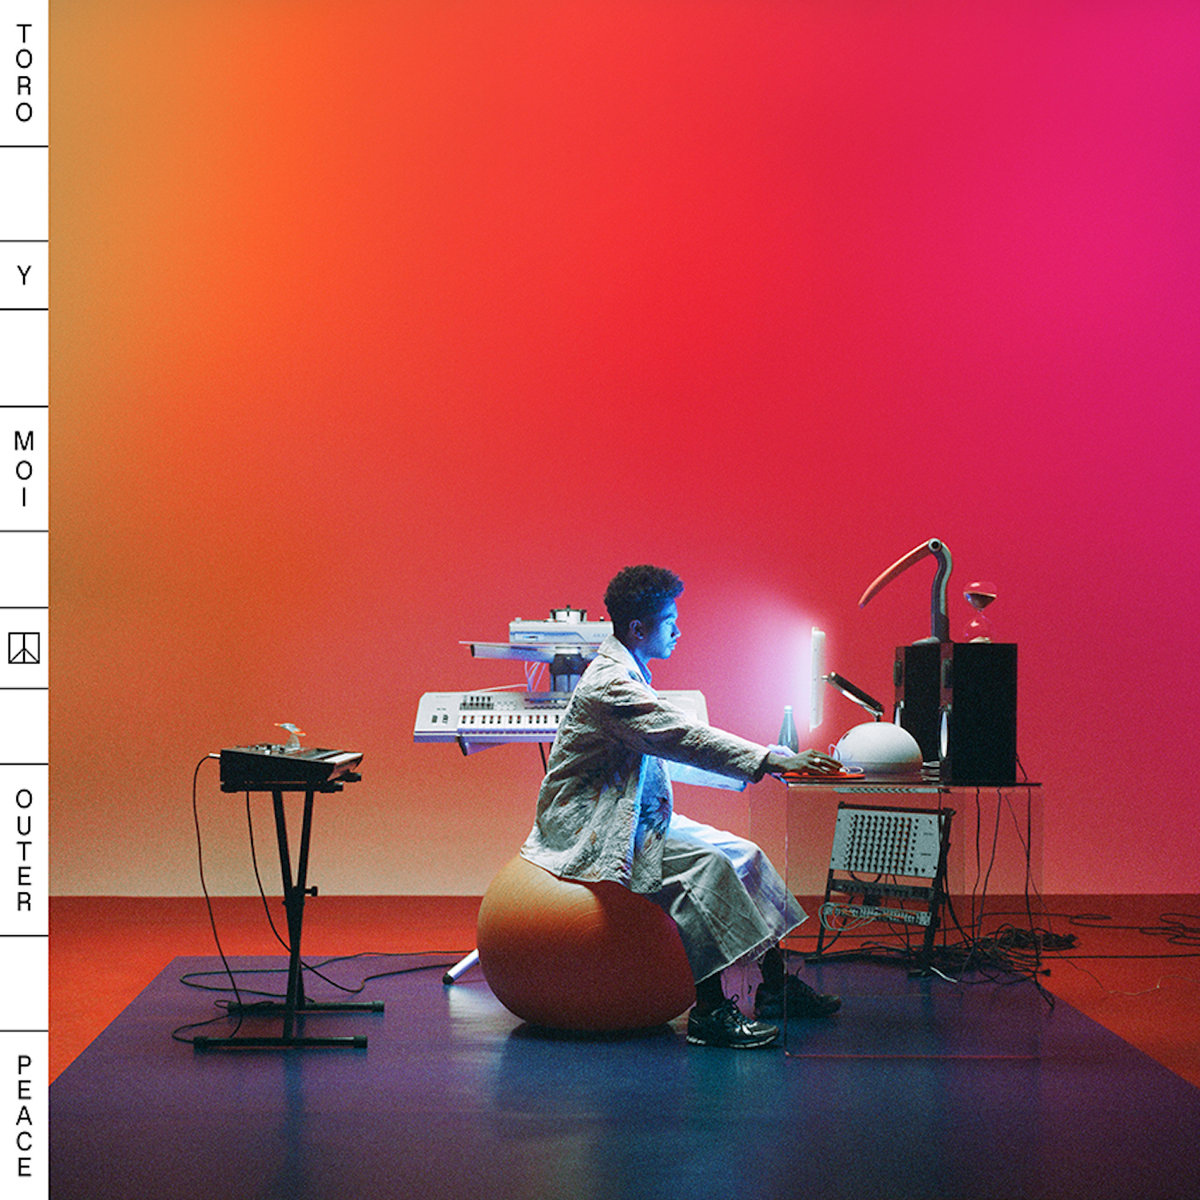 Outer Peace album art by Toro Y Moi.